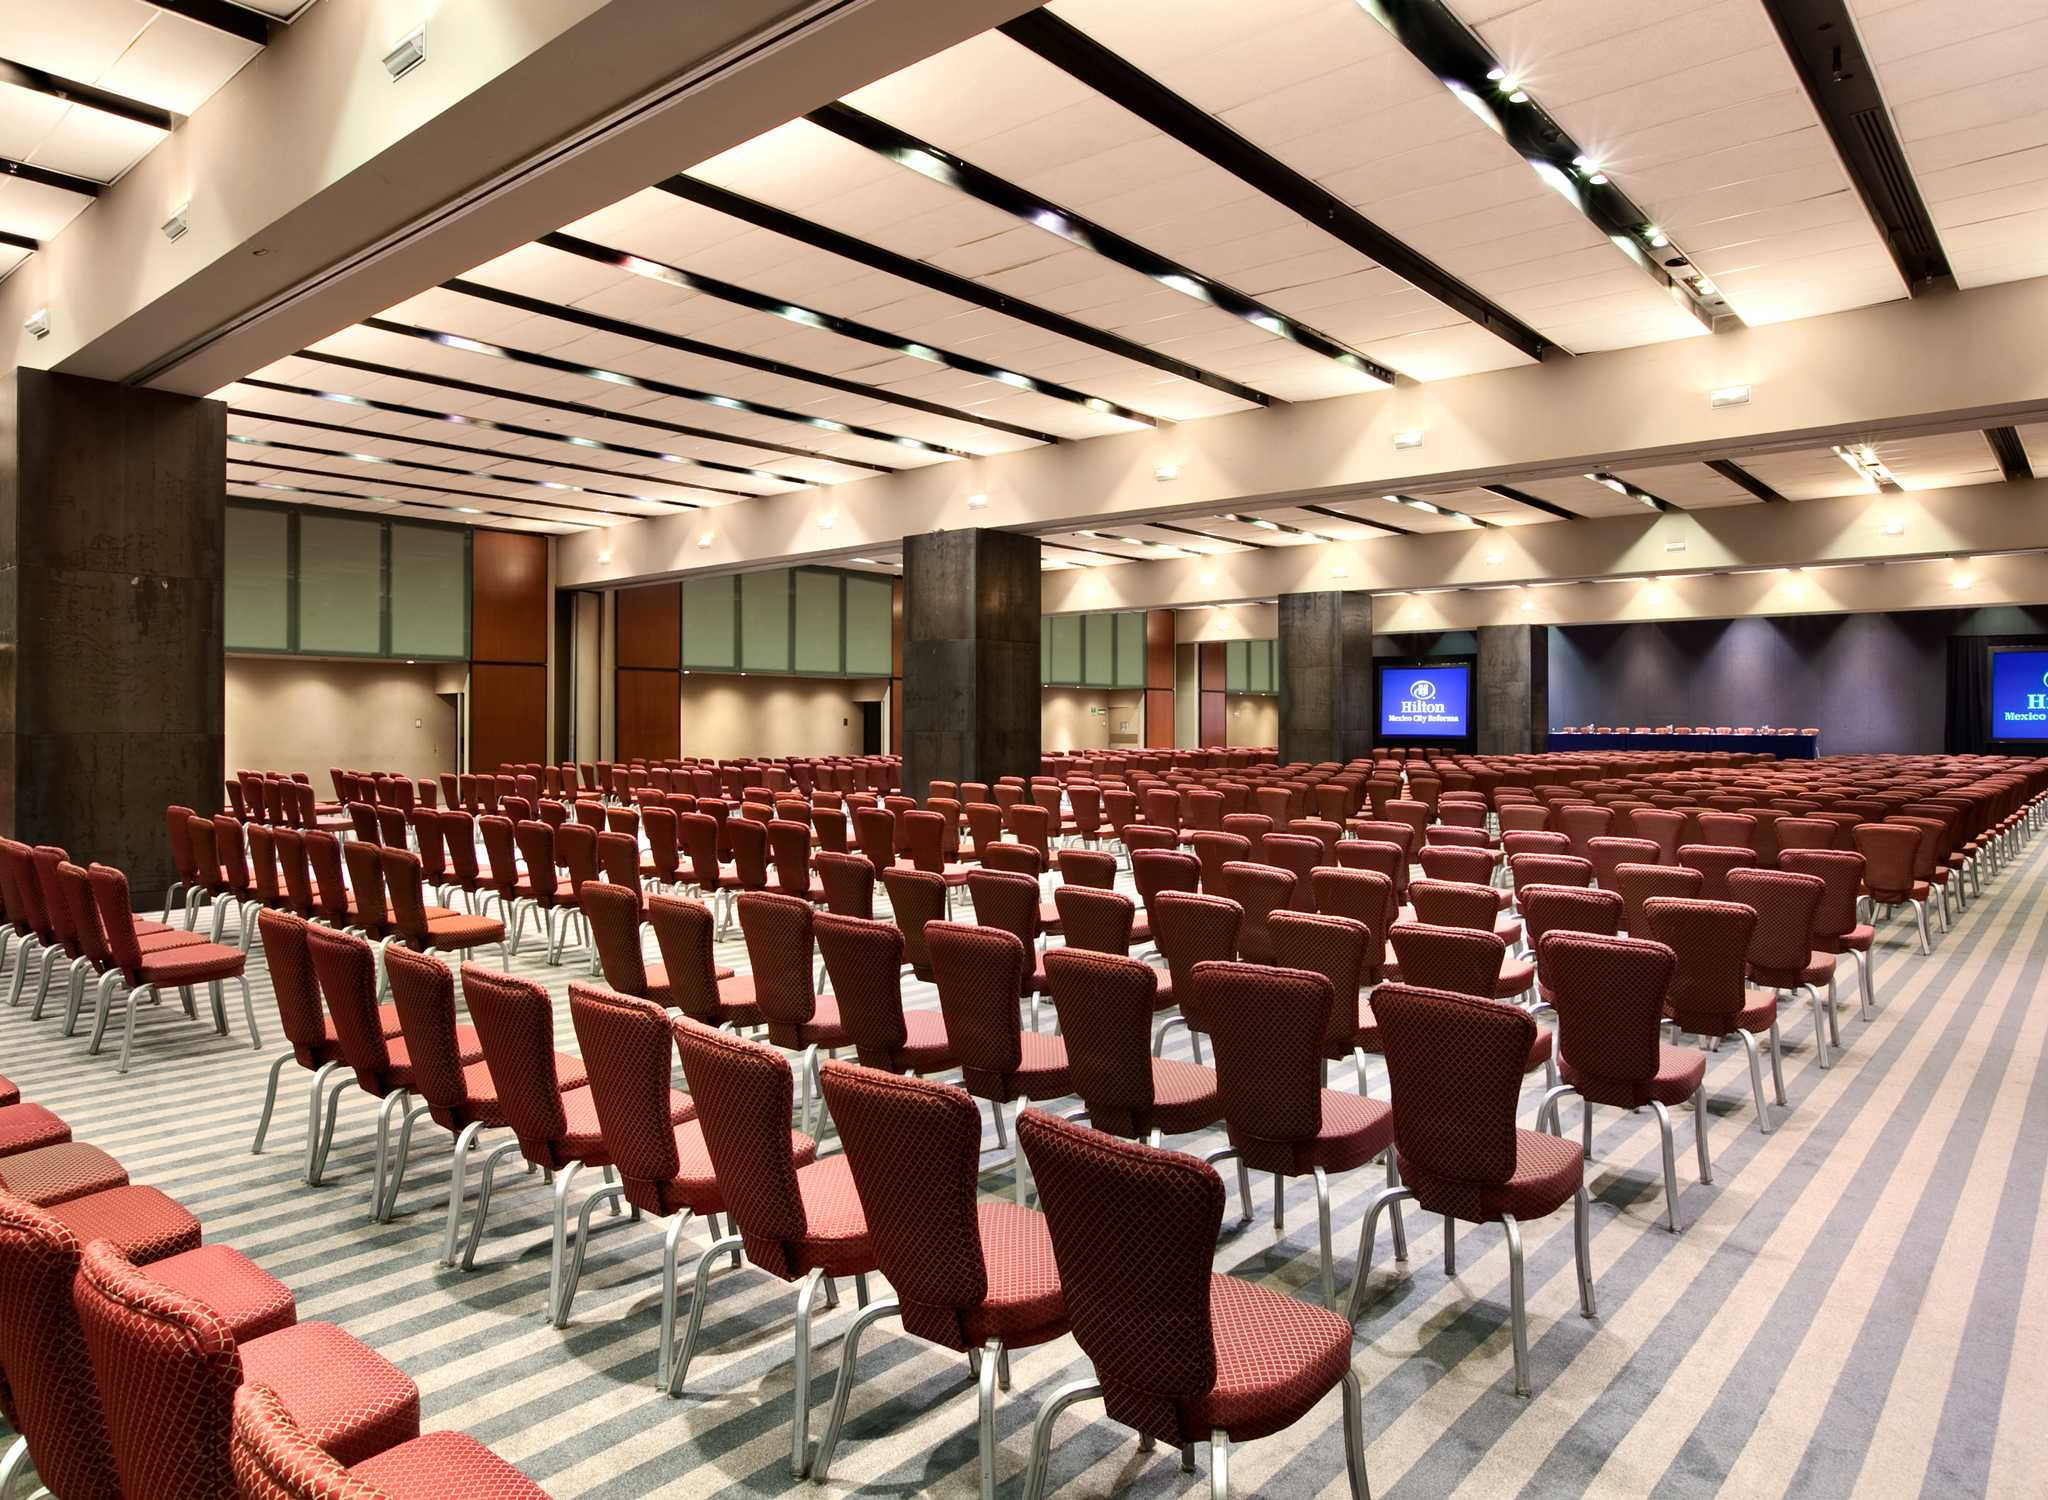 MEXRFHH_meetings_full_conventionctr2.jpg